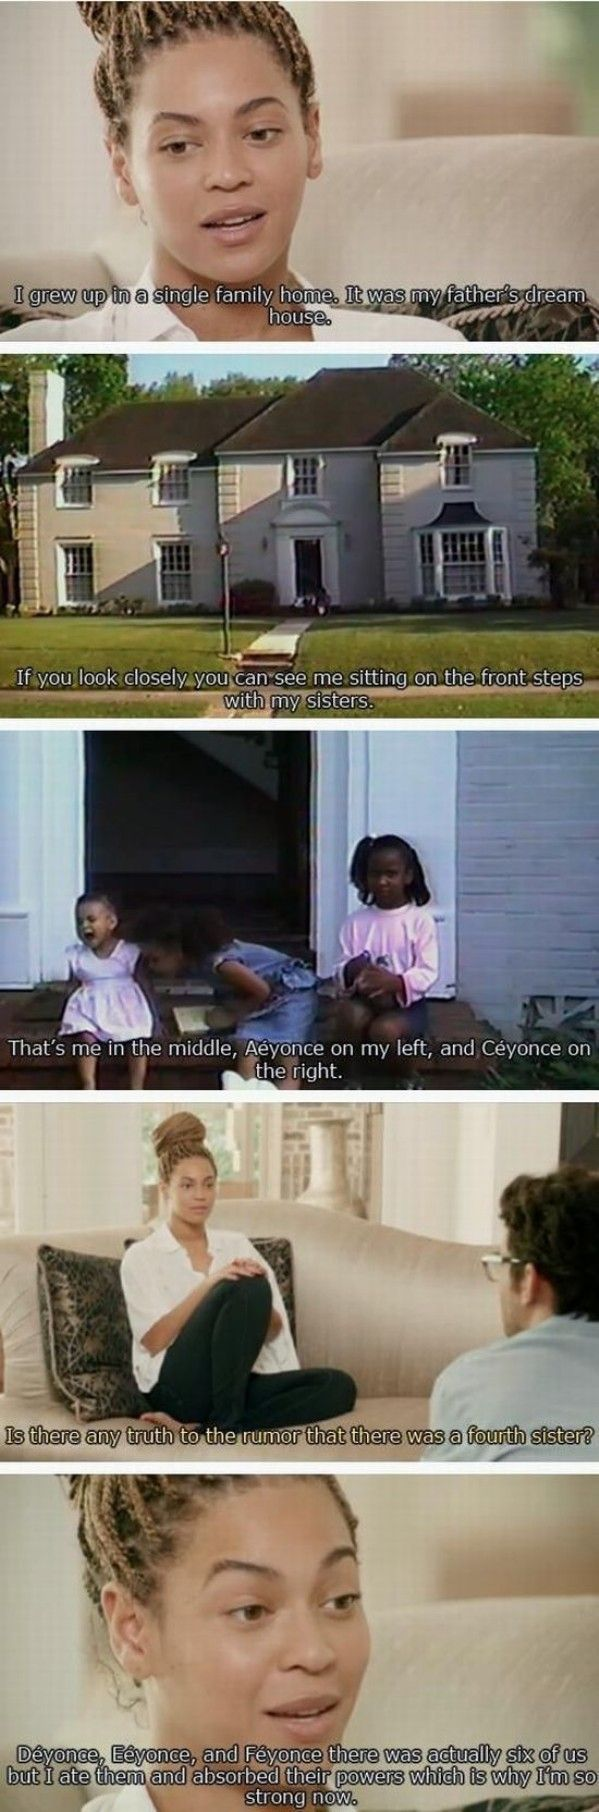 Beyonces Past   - funny pictures #funnypictures